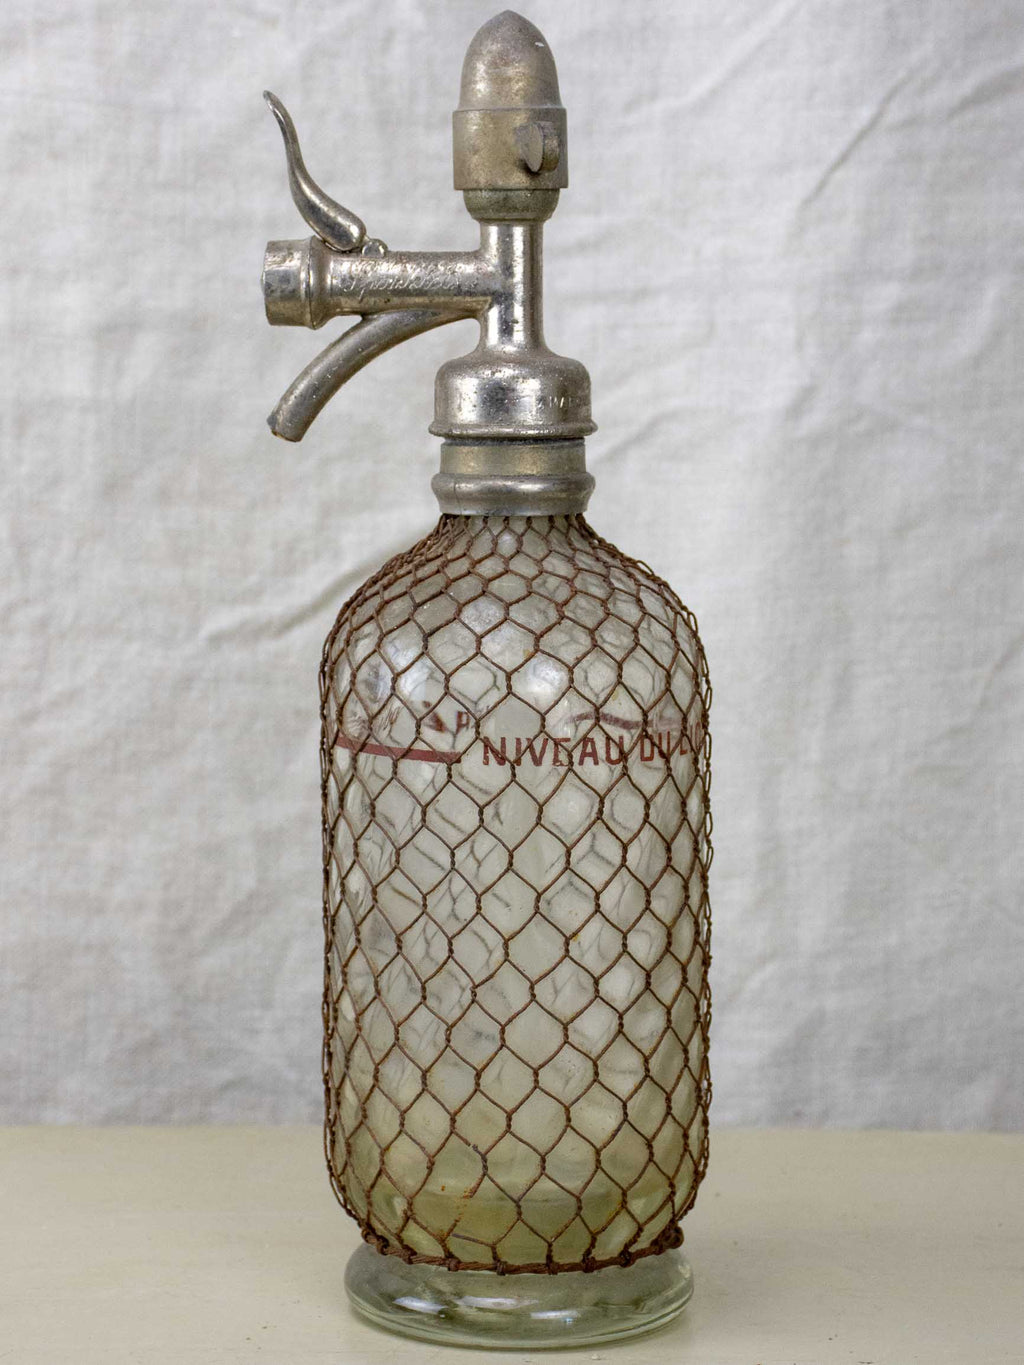 Antique French Sparklets Seltzer bottle with metal wiring